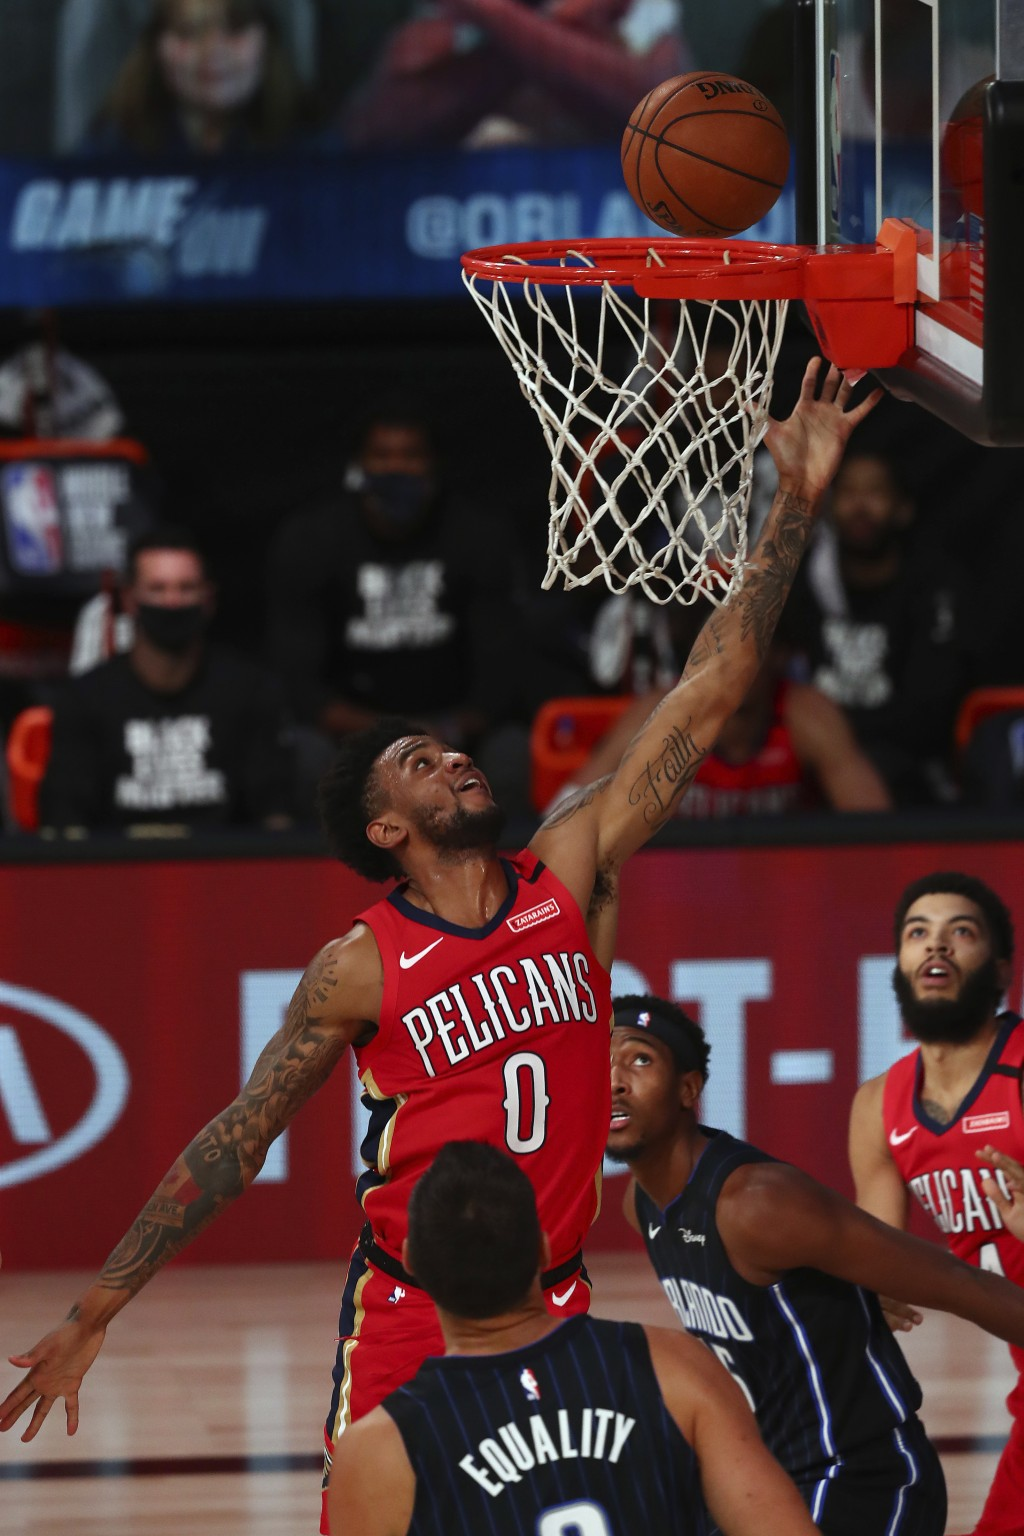 New Orleans Pelicans guard Nickeil Alexander-Walker (0) shoots a layup over Orlando Magic center Nikola Vucevic, foreground, during the first half of ...